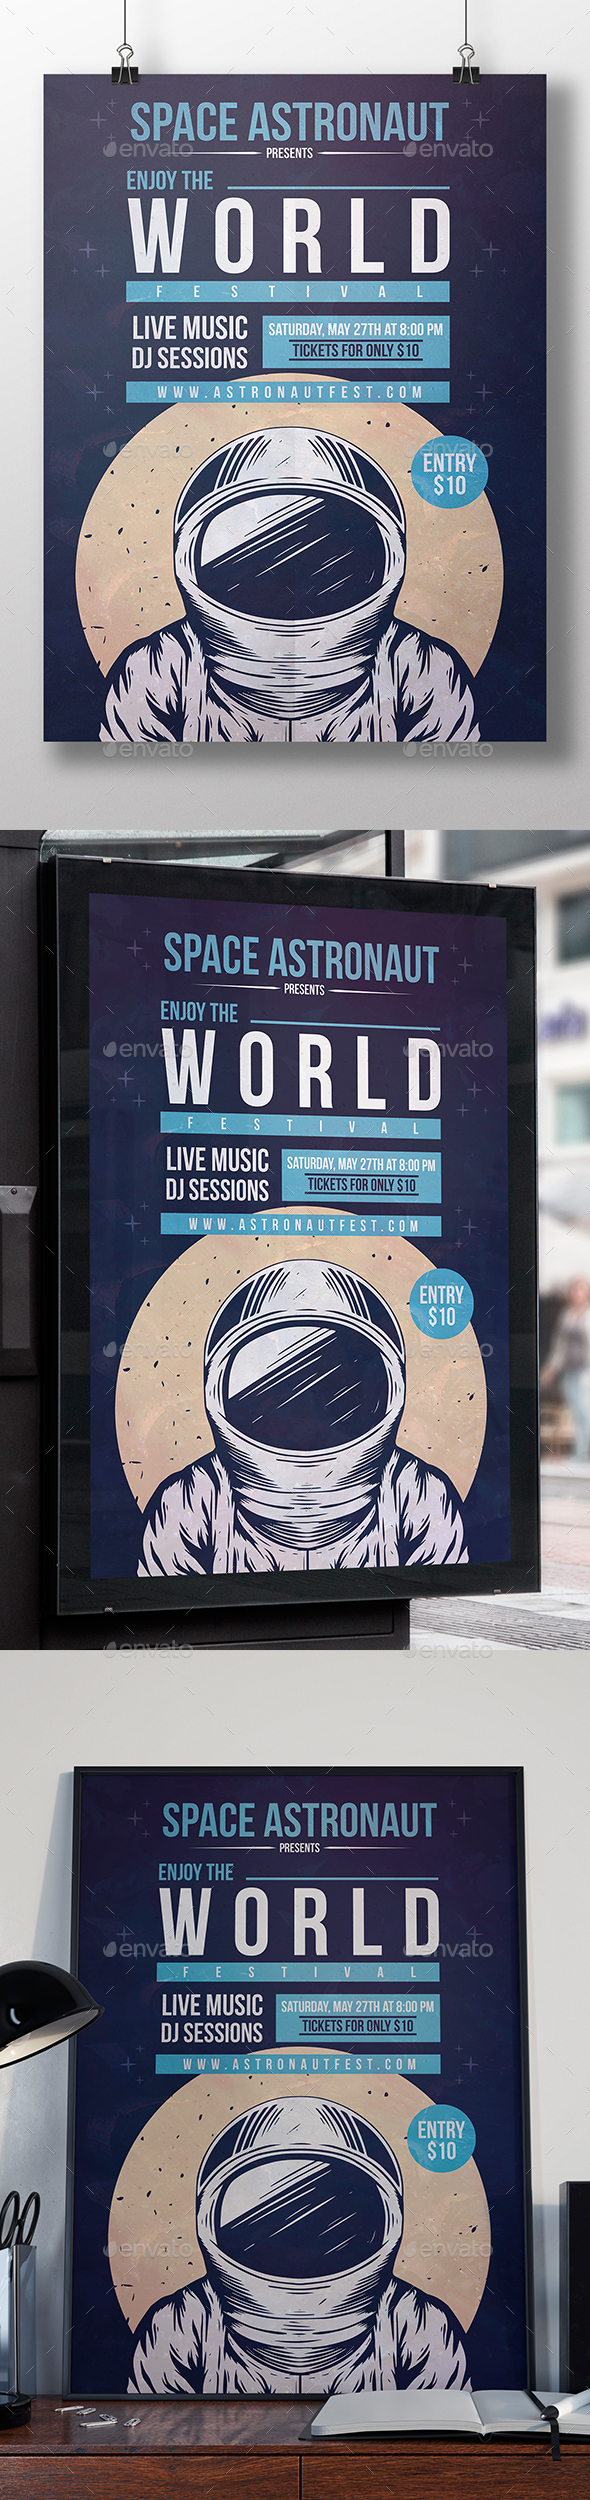 Space Astronaut Flyer Template - Clubs & Parties Events